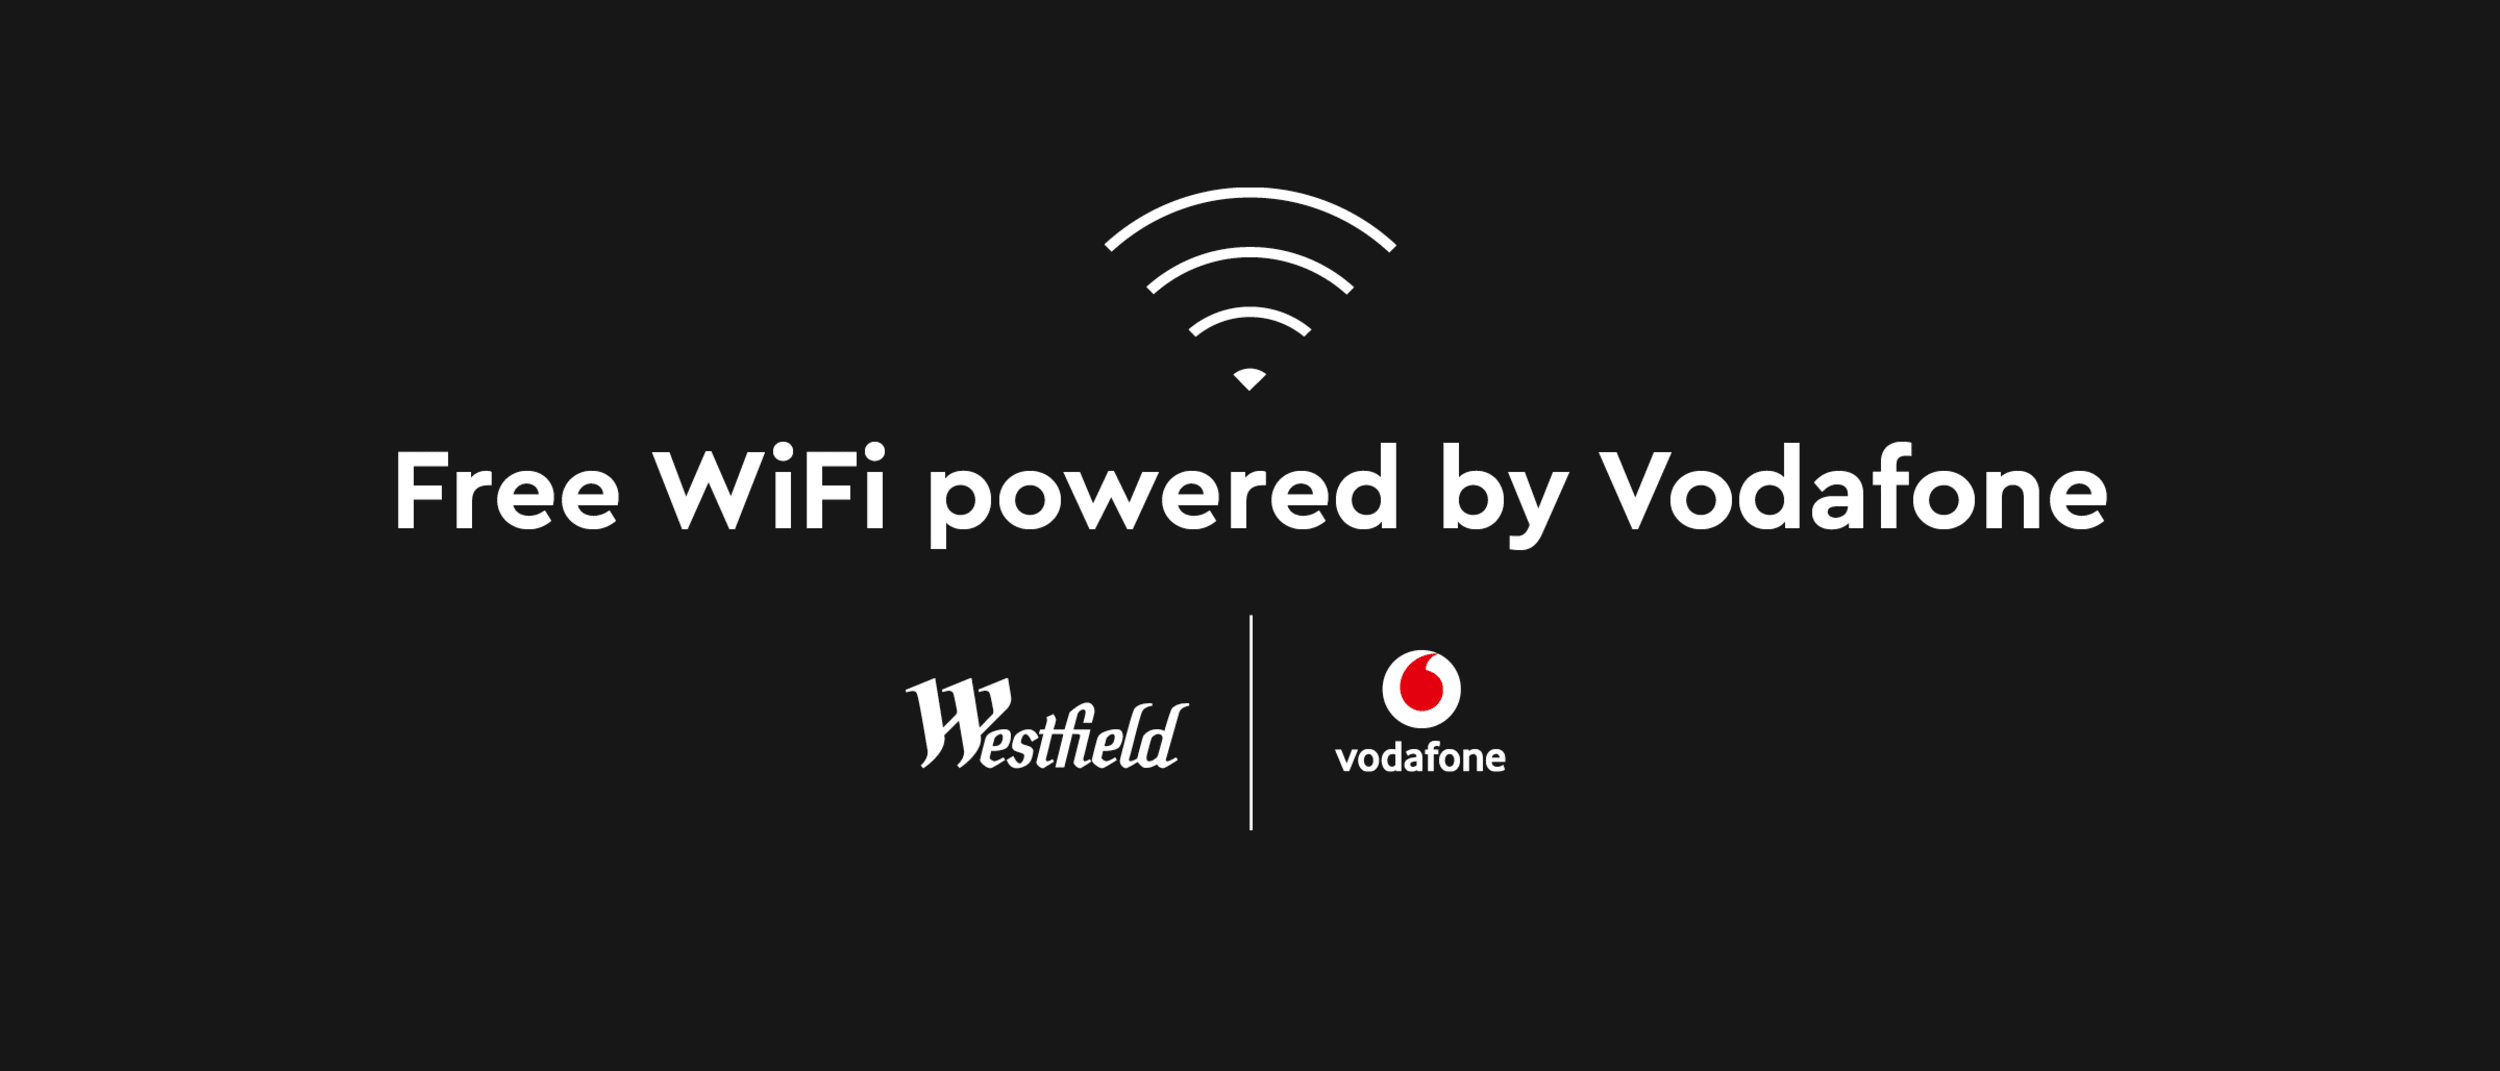 FREE WiFi now available at Westfield Manukau